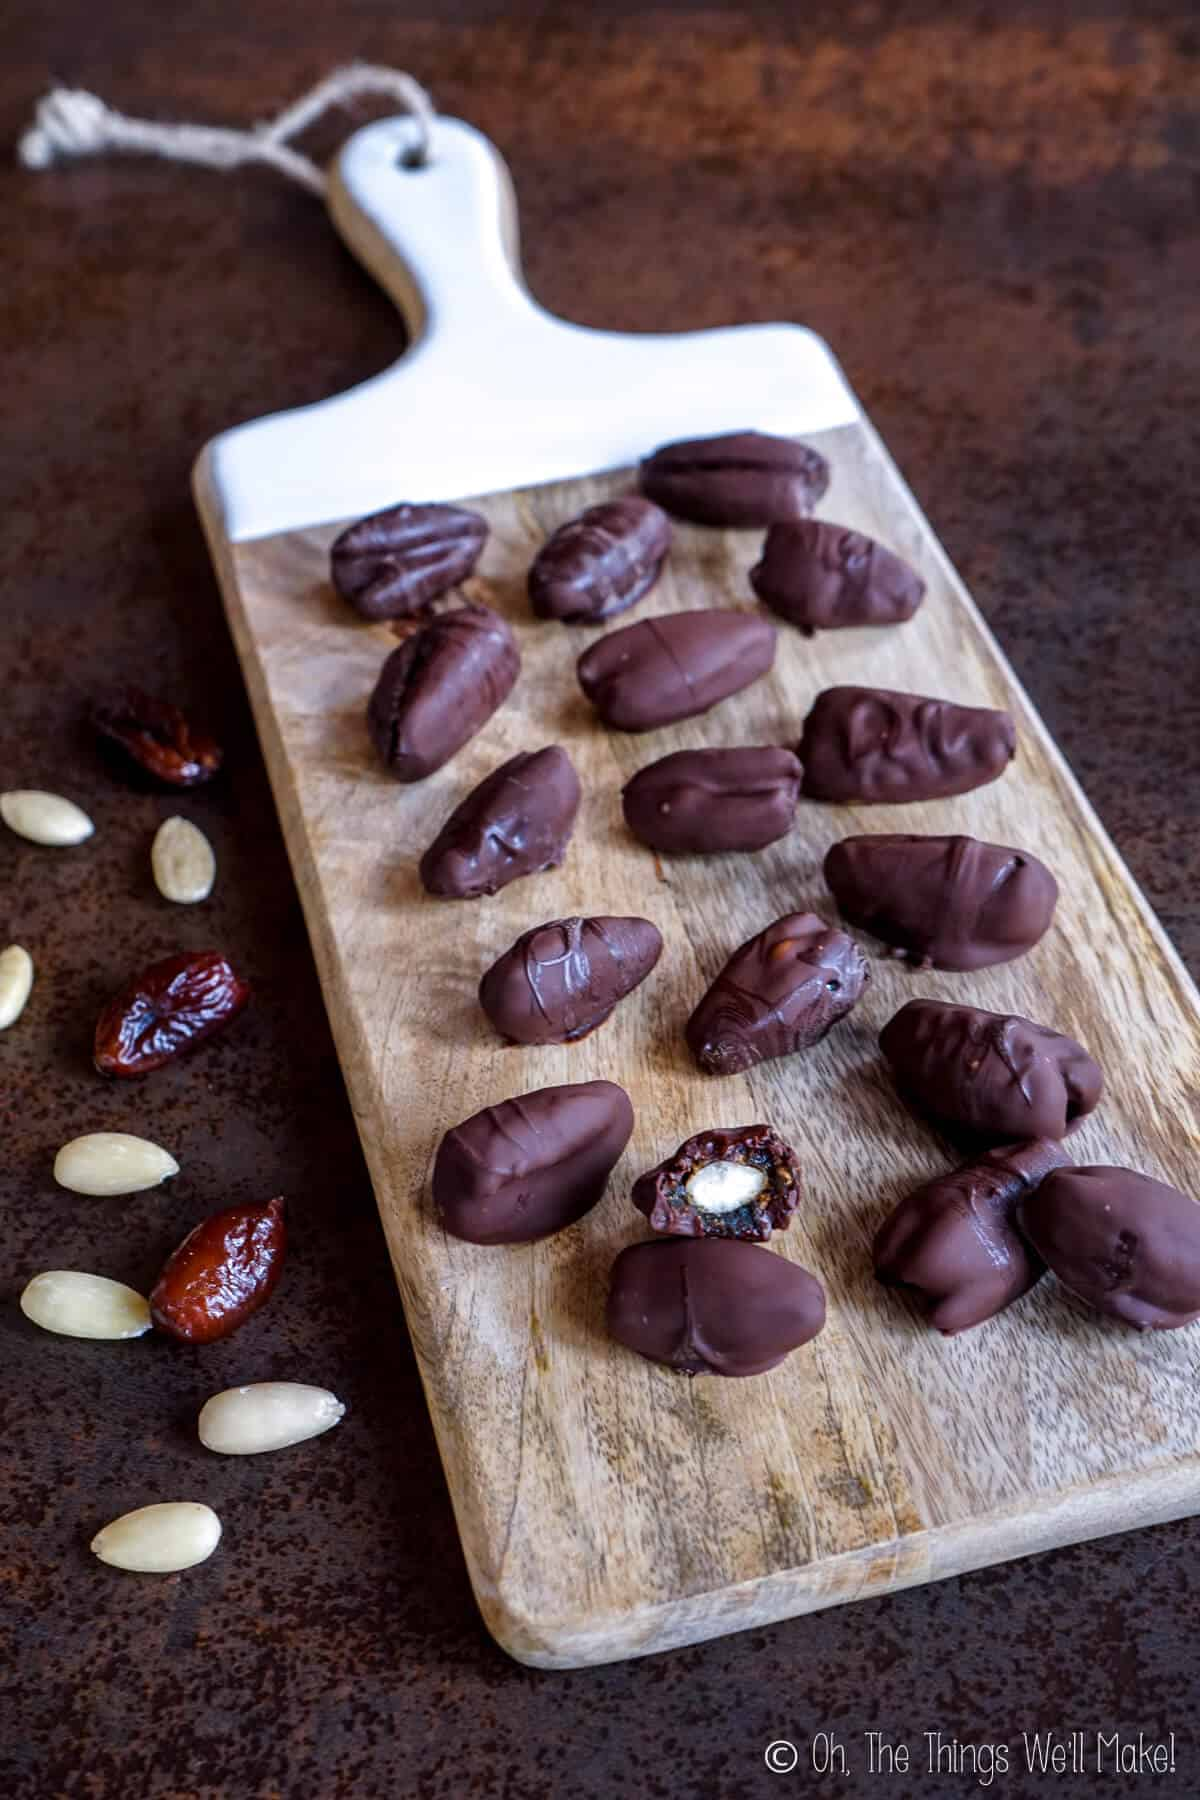 Chocolate dates on a wooden cutting board surrounded by almonds and dates